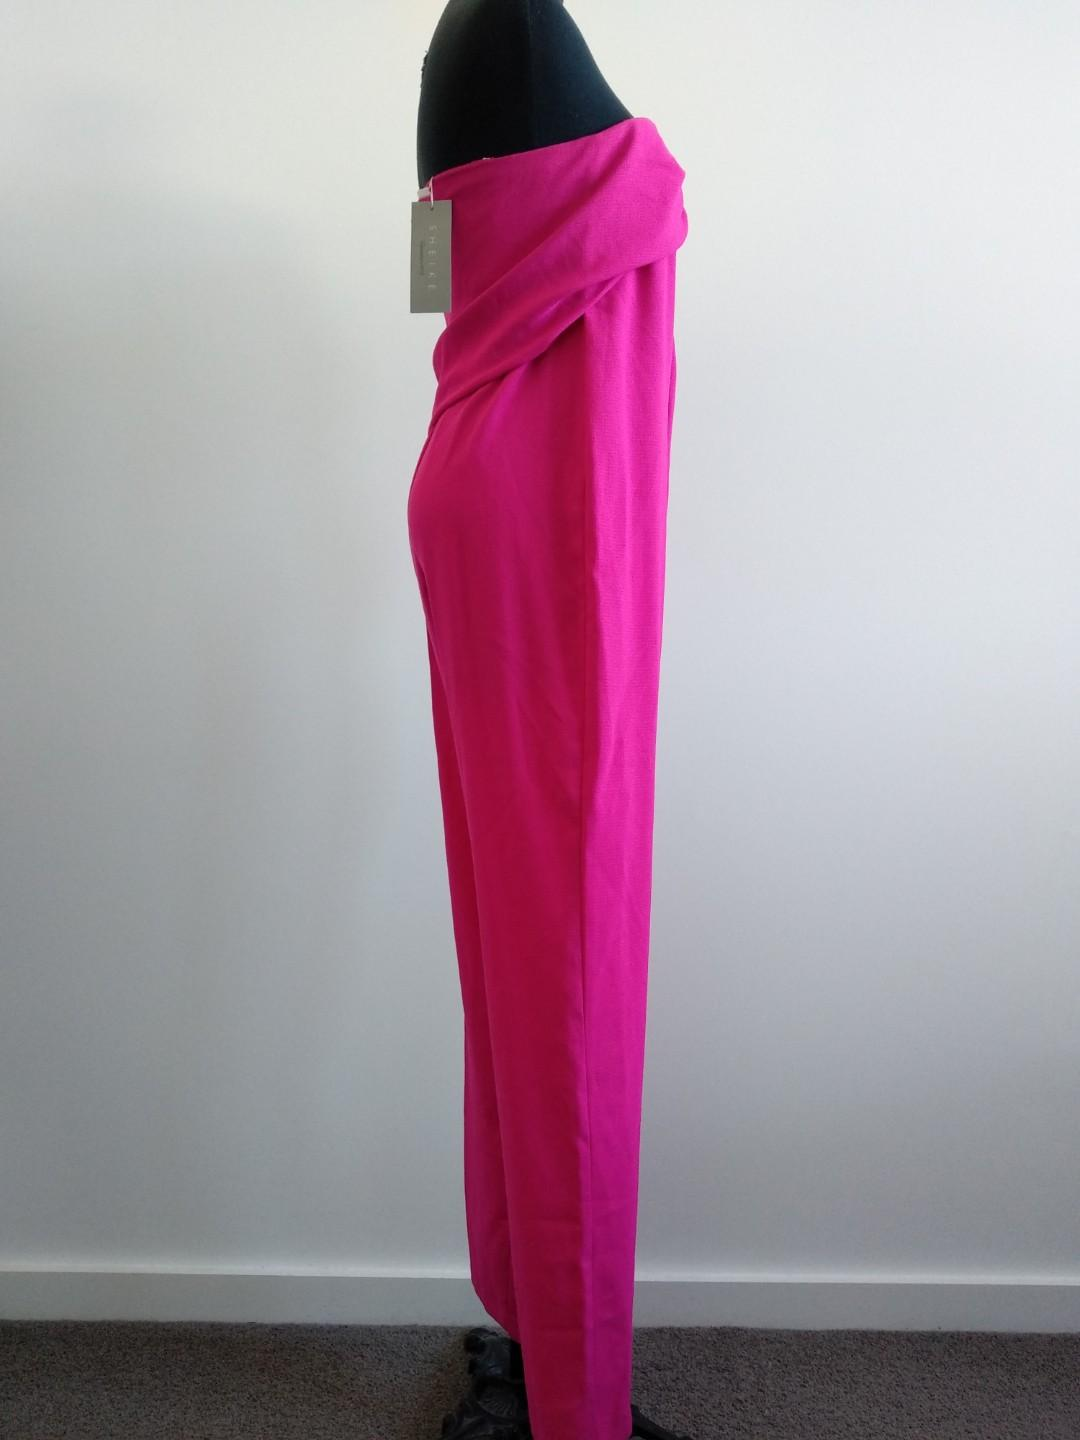 BNWT new Sheike hot pink jumpsuit strapless size 6